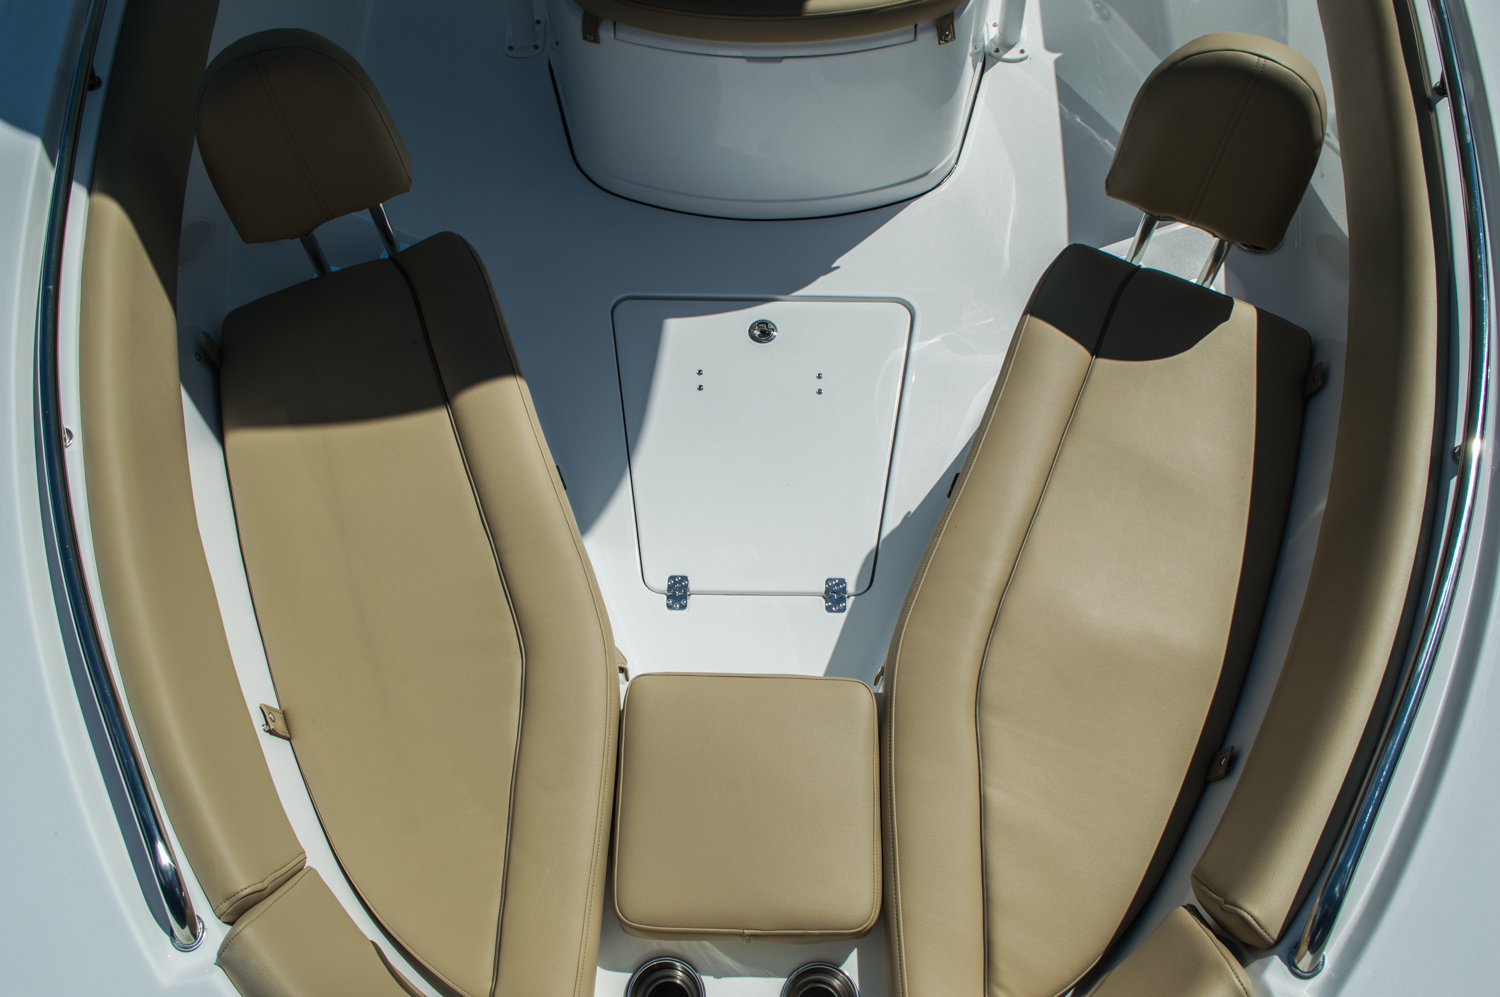 Thumbnail 18 for New 2016 Sportsman Heritage 251 Center Console boat for sale in Miami, FL